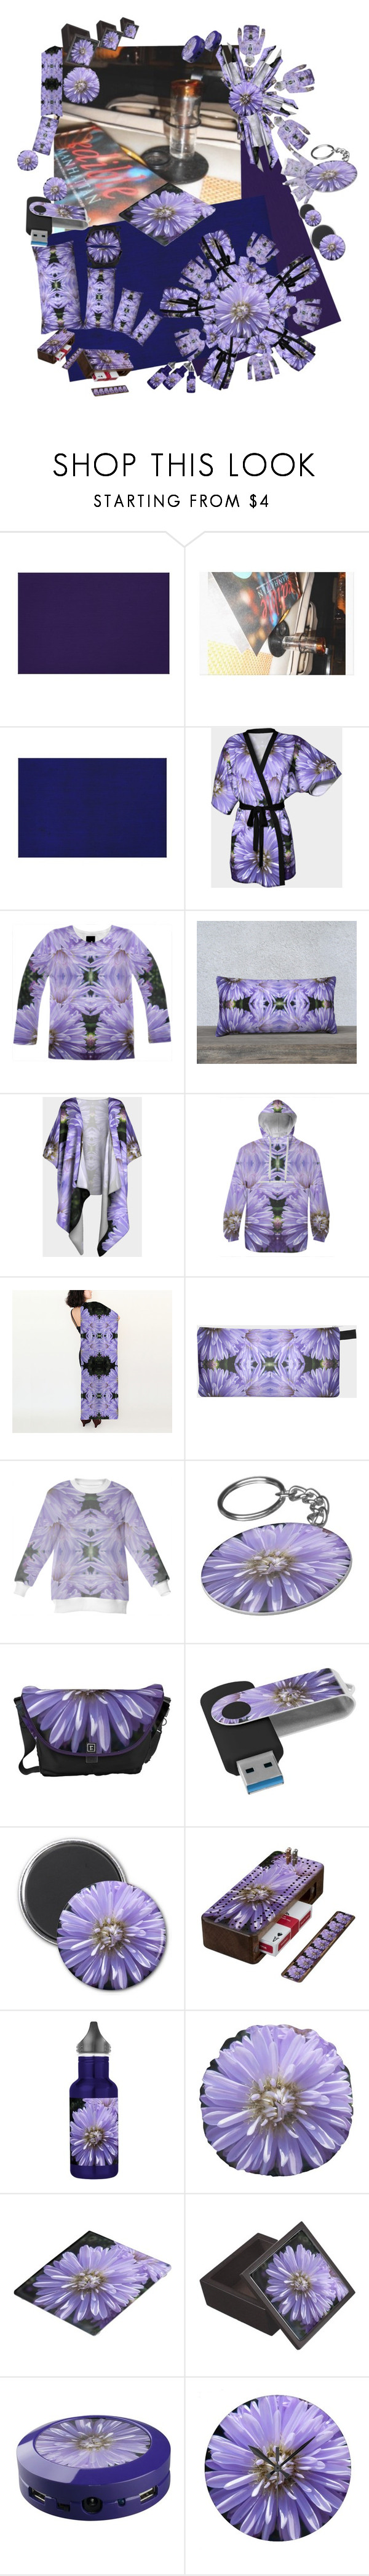 """""""Being Whipped Up to Further Foul Plans."""" by gayeelise ❤ liked on Polyvore"""